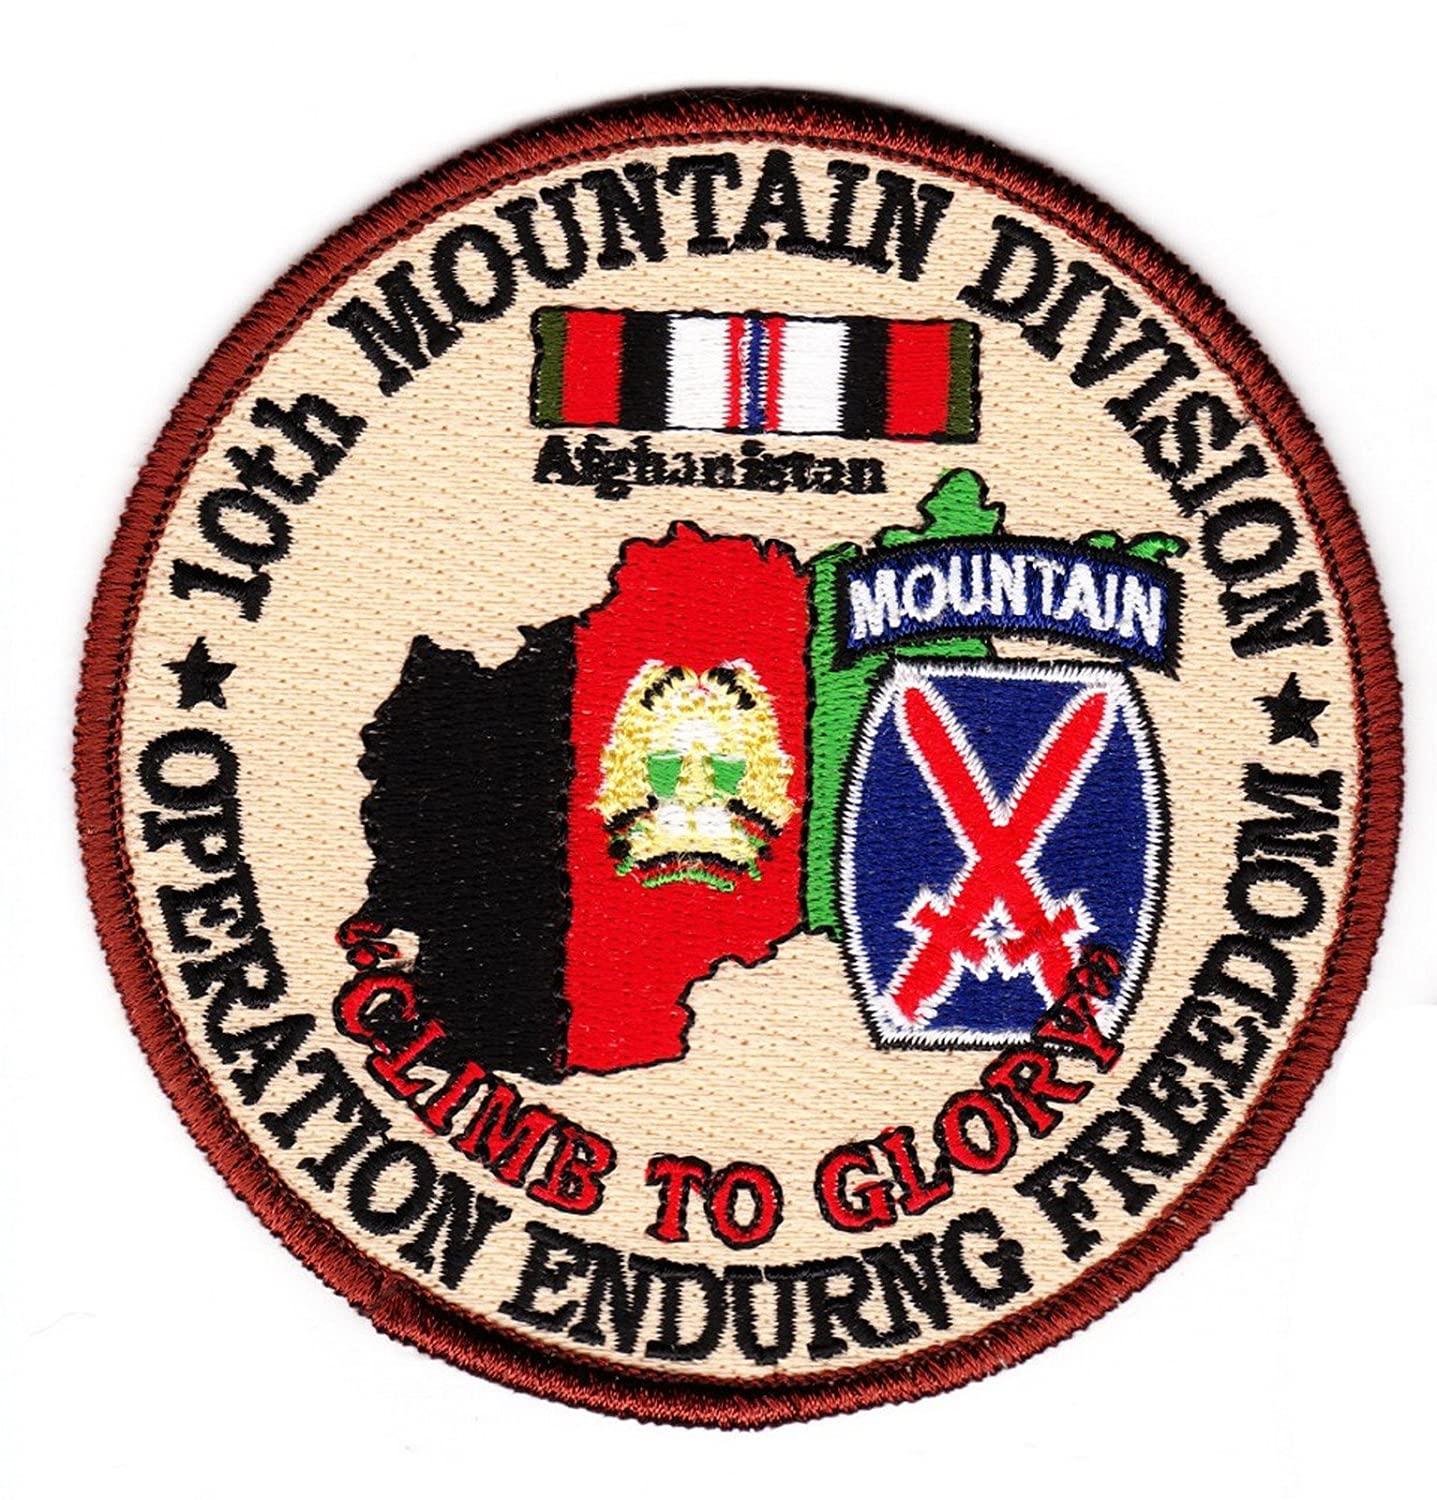 10th Mountain Division Operation Enduring Freedom Patch by Military Productions   B00QUBP4WM